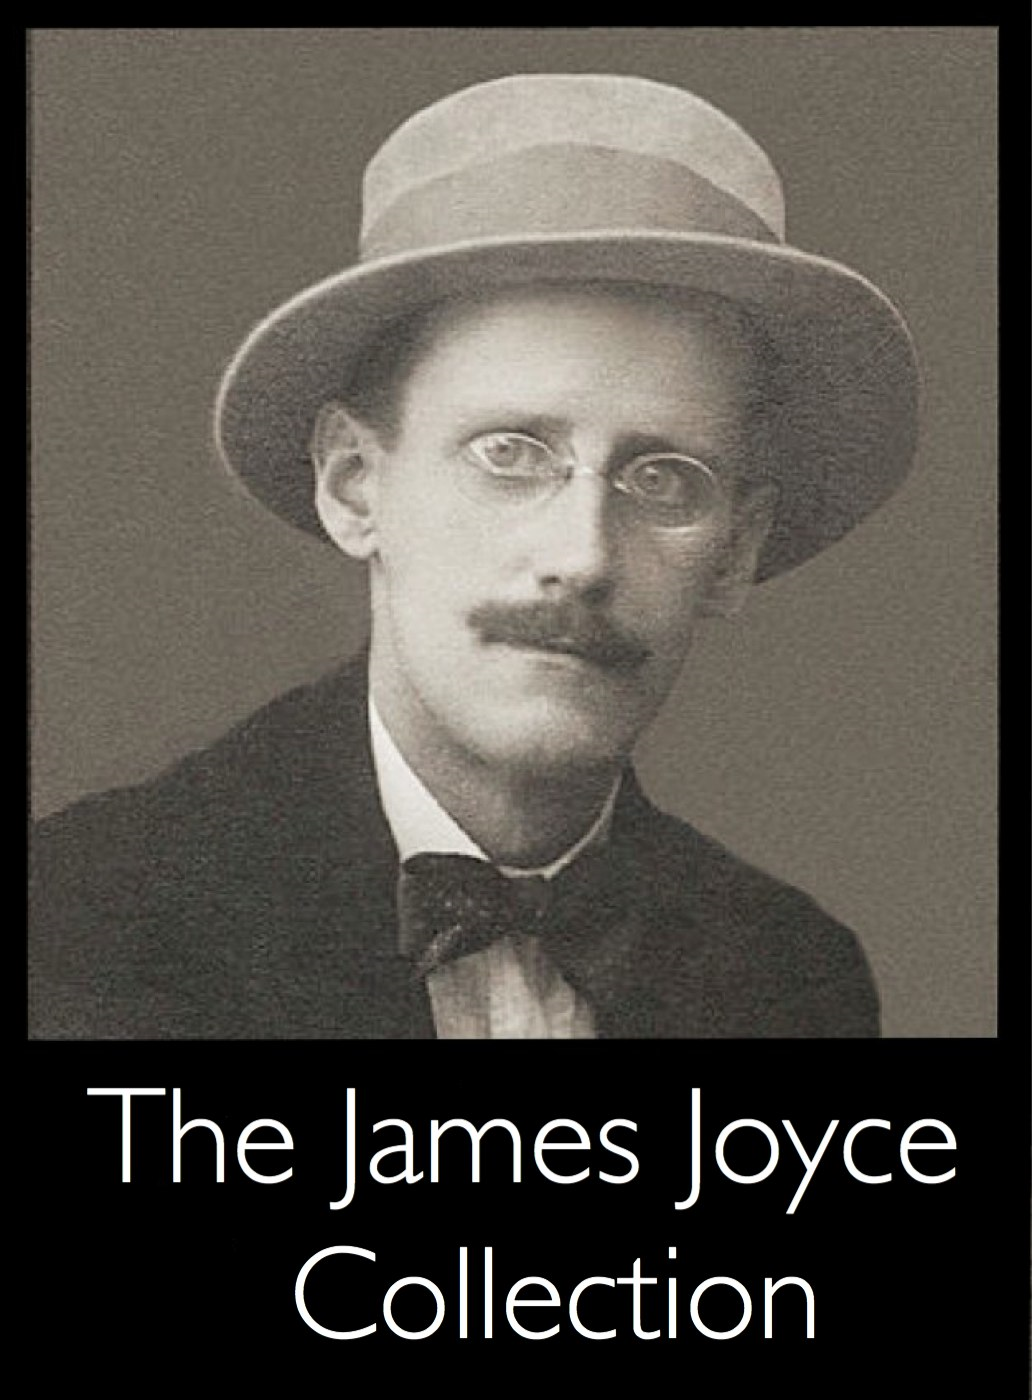 James Joyce - The James Joyce Collection